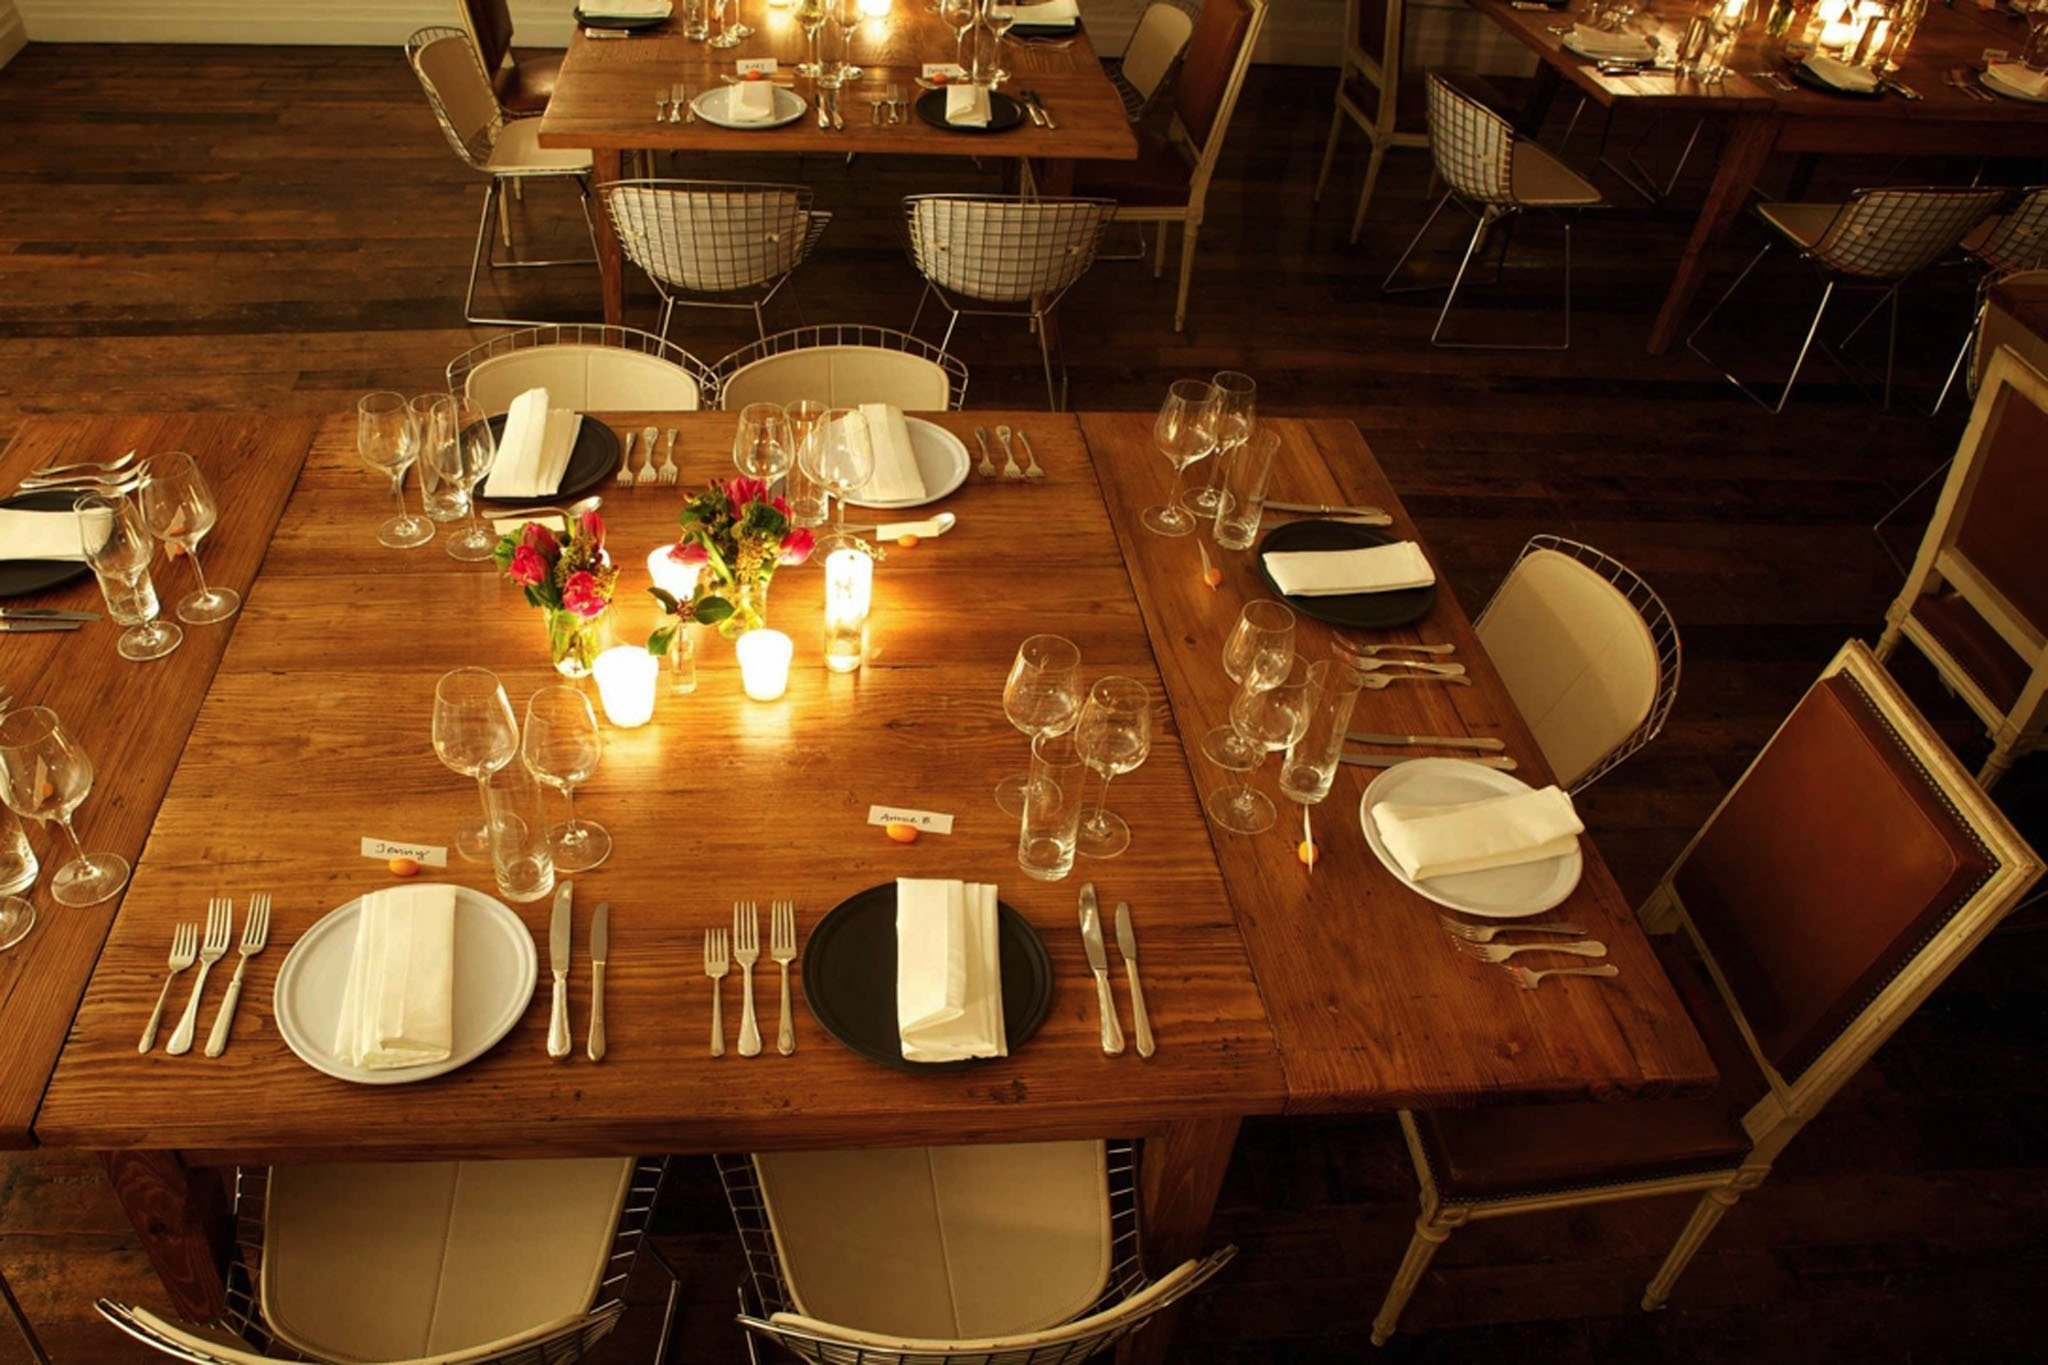 10 Awesome Romantic Date Ideas For Her anniversary date ideas in nyc for a romantic dinner or fun event 1 2020